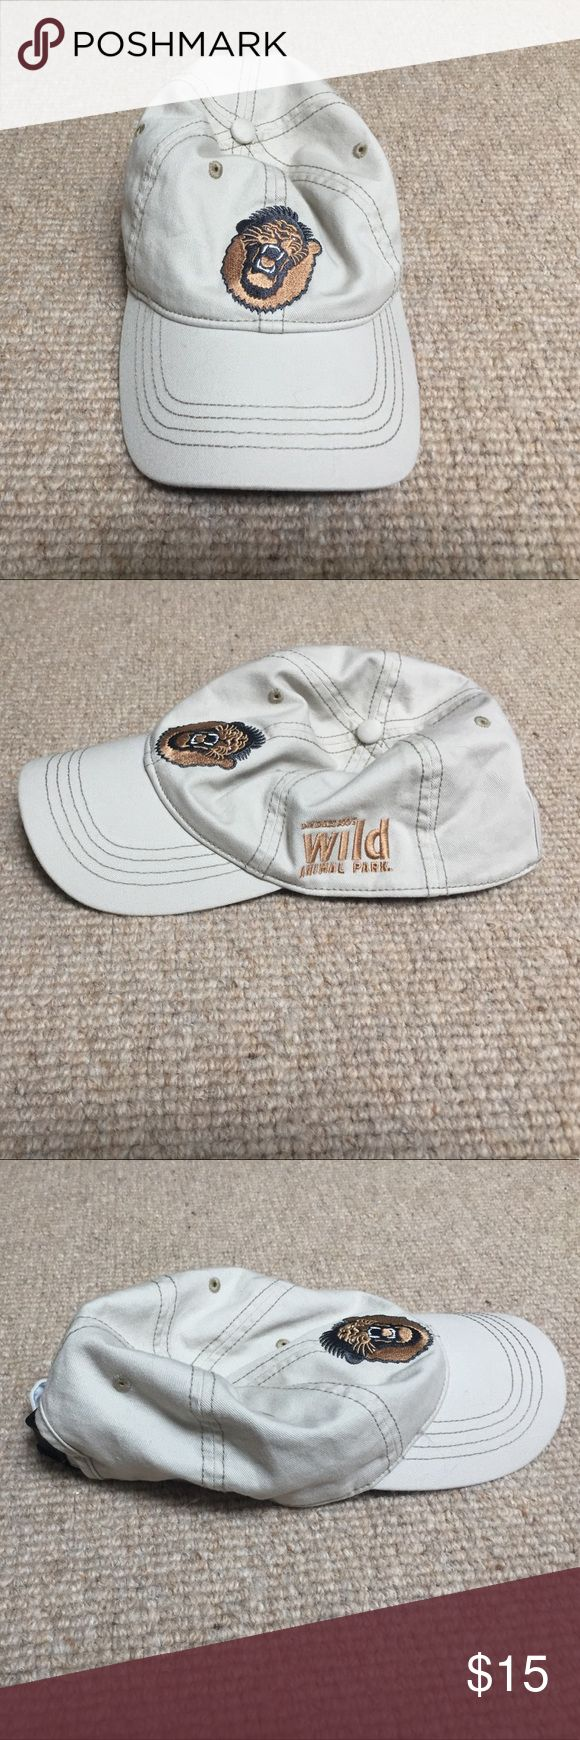 San Diego Zoo's Wild Animal Park Hat San Diego Zoo's Wild Animal Park Hat. Never used. Lion roaring on the front. Offers welcome. Accessories Hats